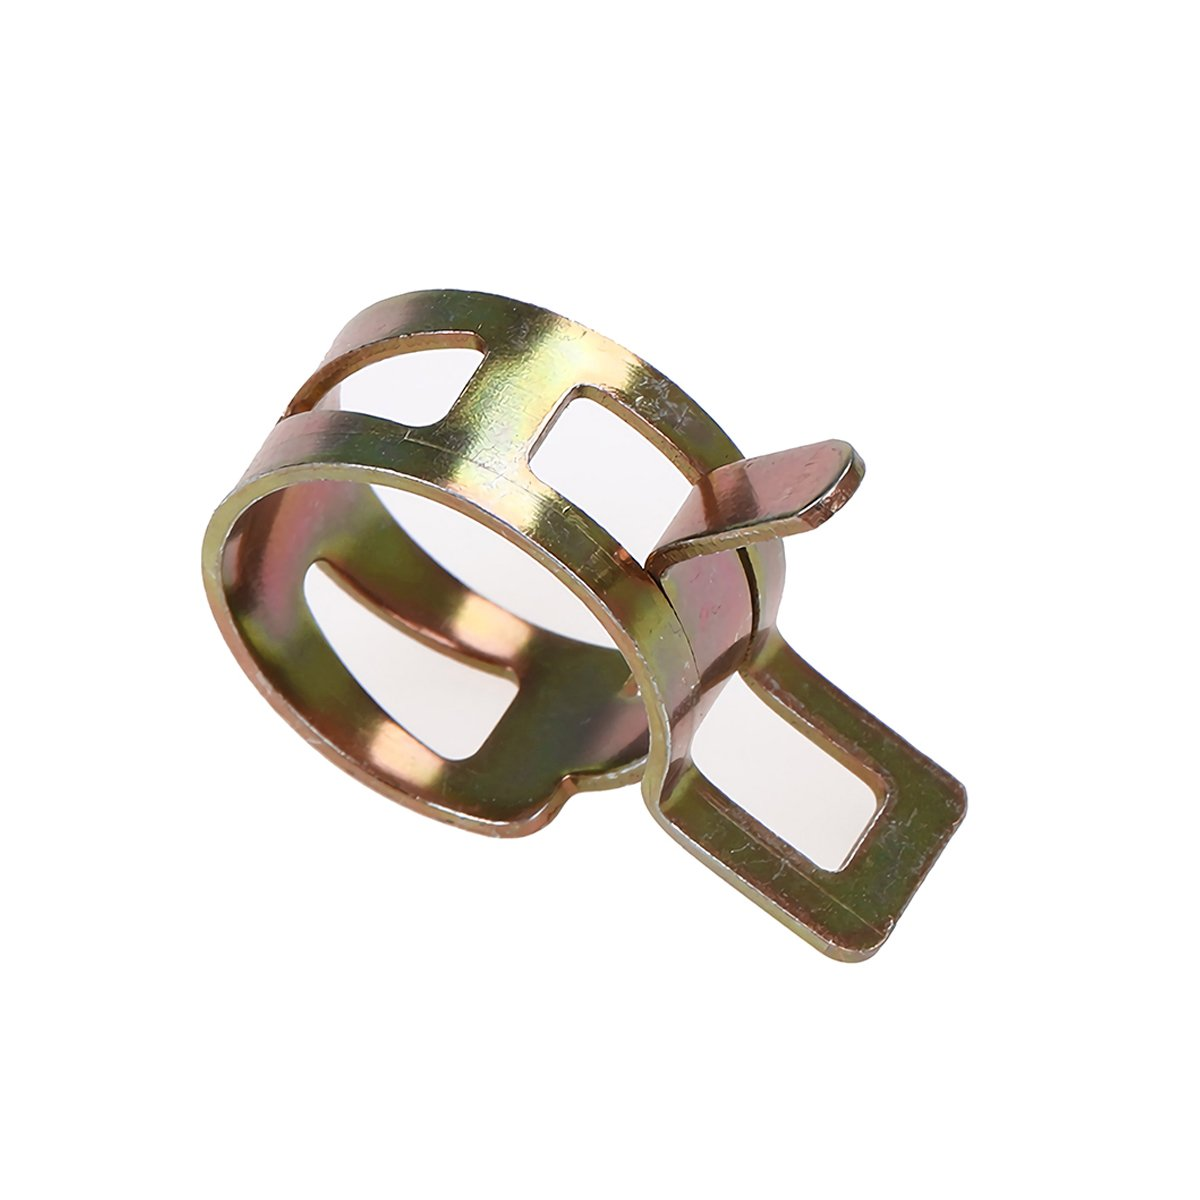 Spring Band Clamps Fuel Line Hose Clamp Pipe Tube Clamp Fastener Vacuum for Plumbing Automotive Mechanical Applications 20pcs